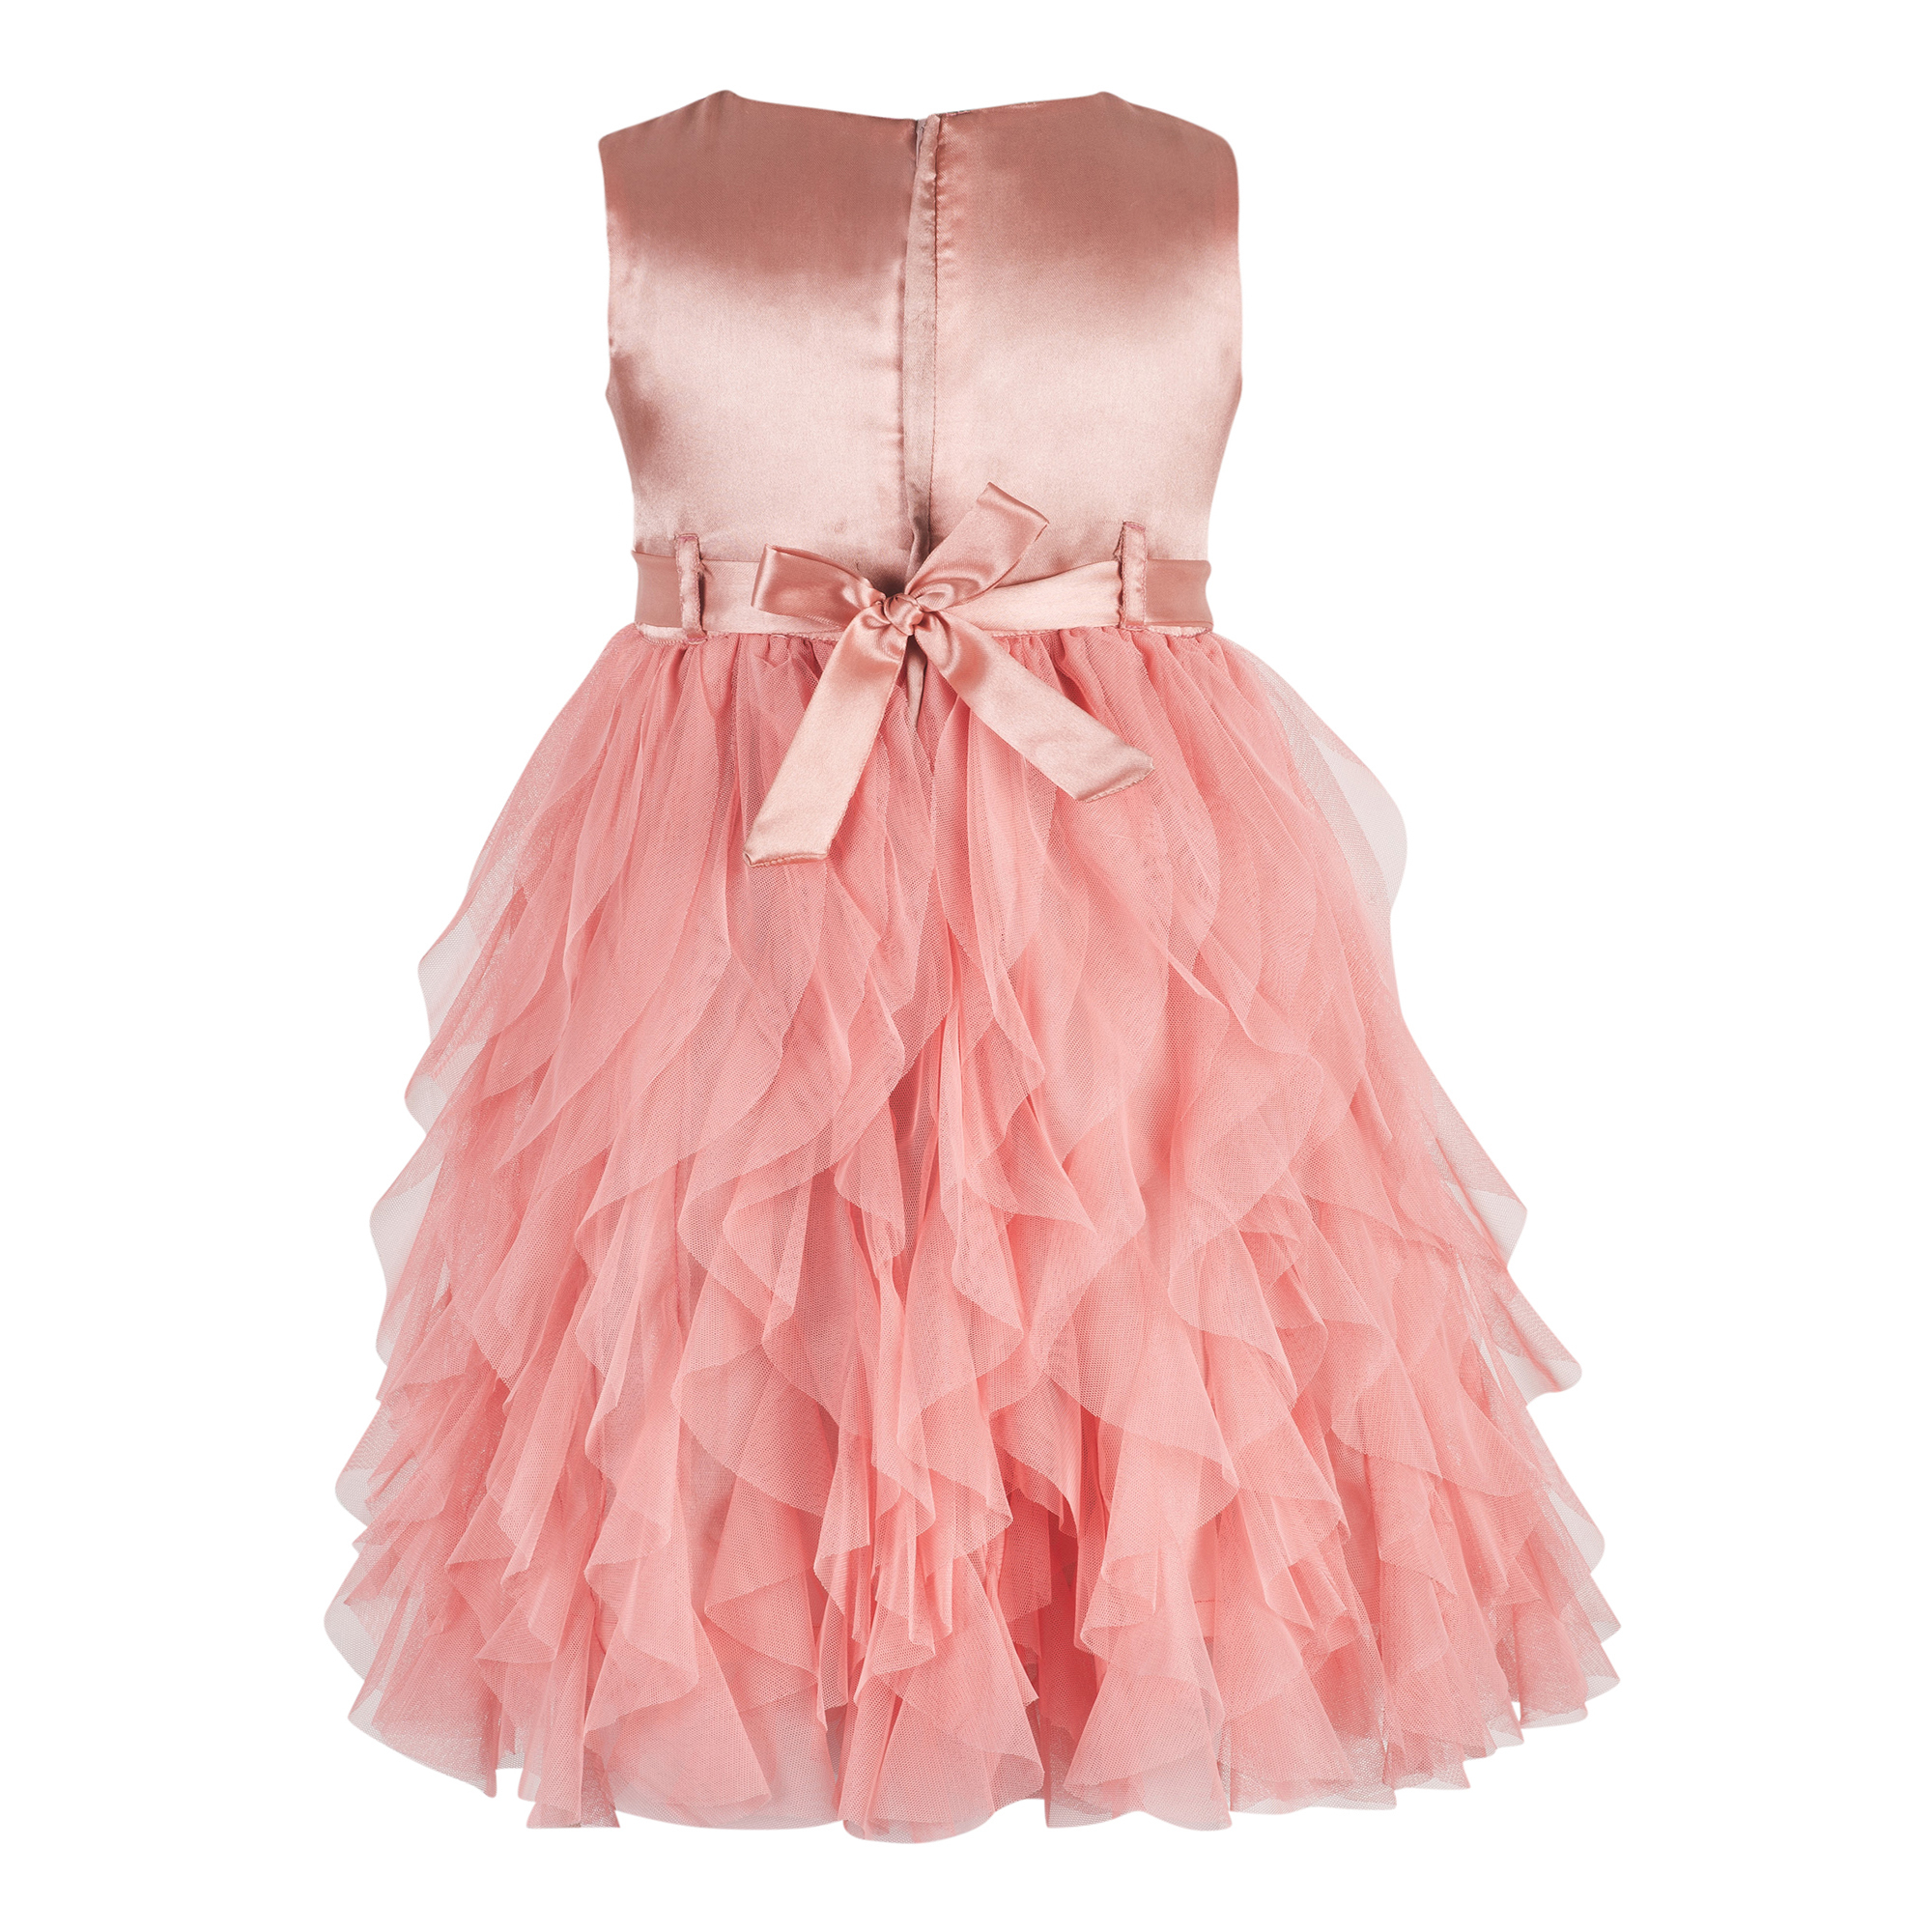 Kids Orange waterfall dress